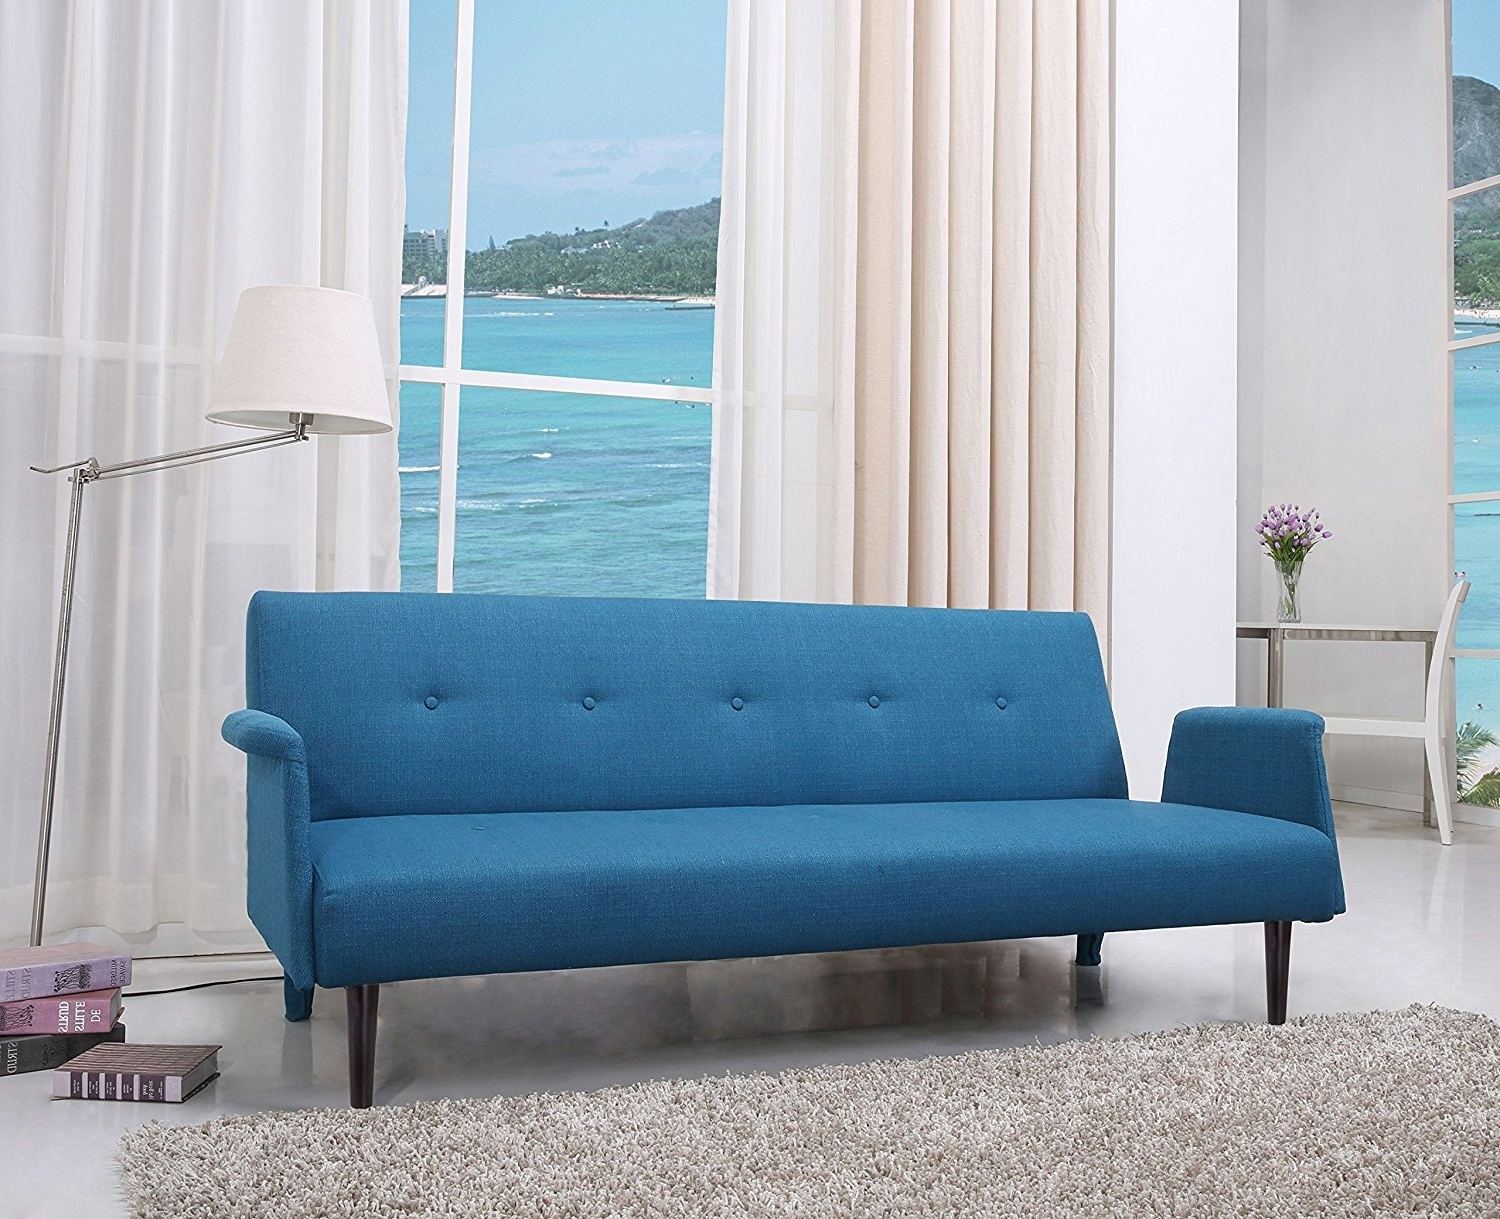 Aqua Sofas In Recent Amazon: Gold Sparrow Westminster Convertible Sofa Bed, Blue (View 12 of 15)